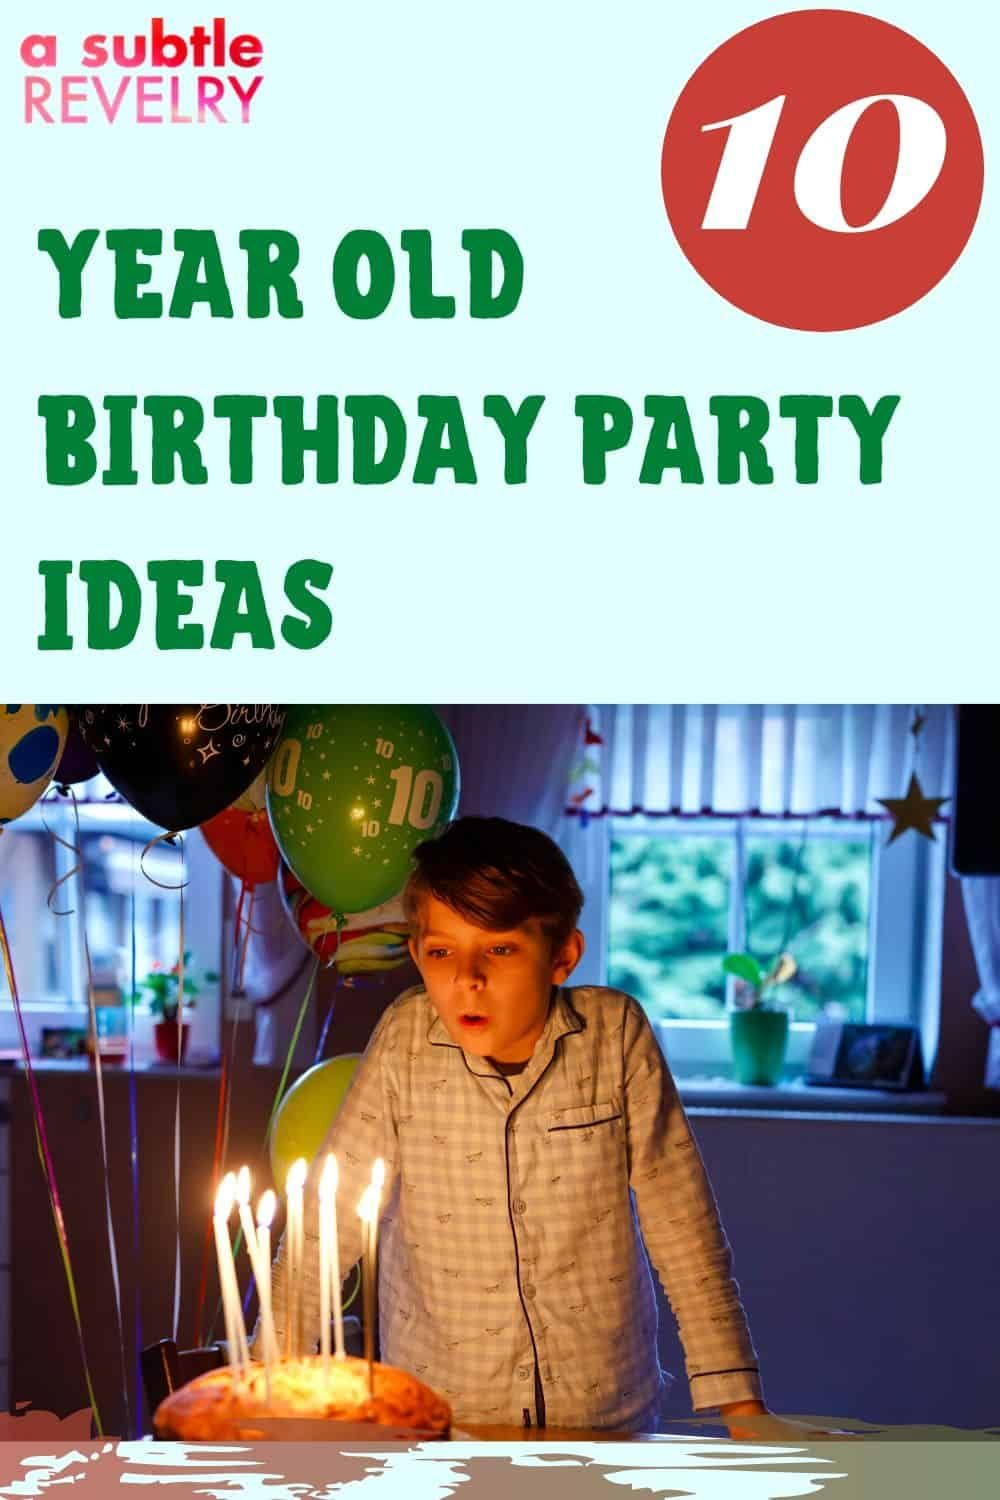 10 Year Old Birthday Party Ideas For Your Kids In 2020 Boy Birthday Party Themes Girls Party Themes Boy Birthday Parties